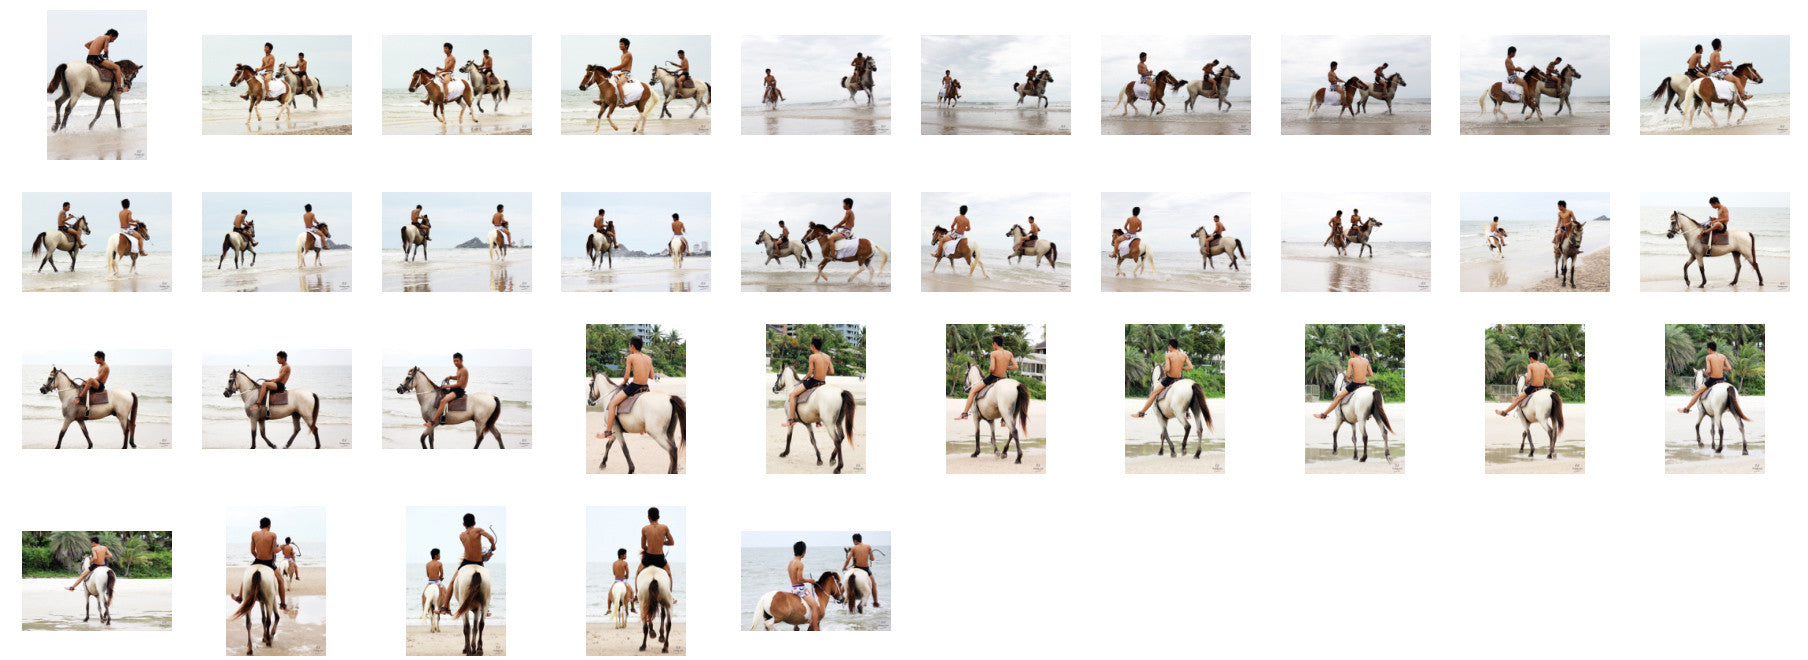 Thaksin in Black Spandex Riding with Saddle on Buckskin Horse, Part 6 - Riding.Vision